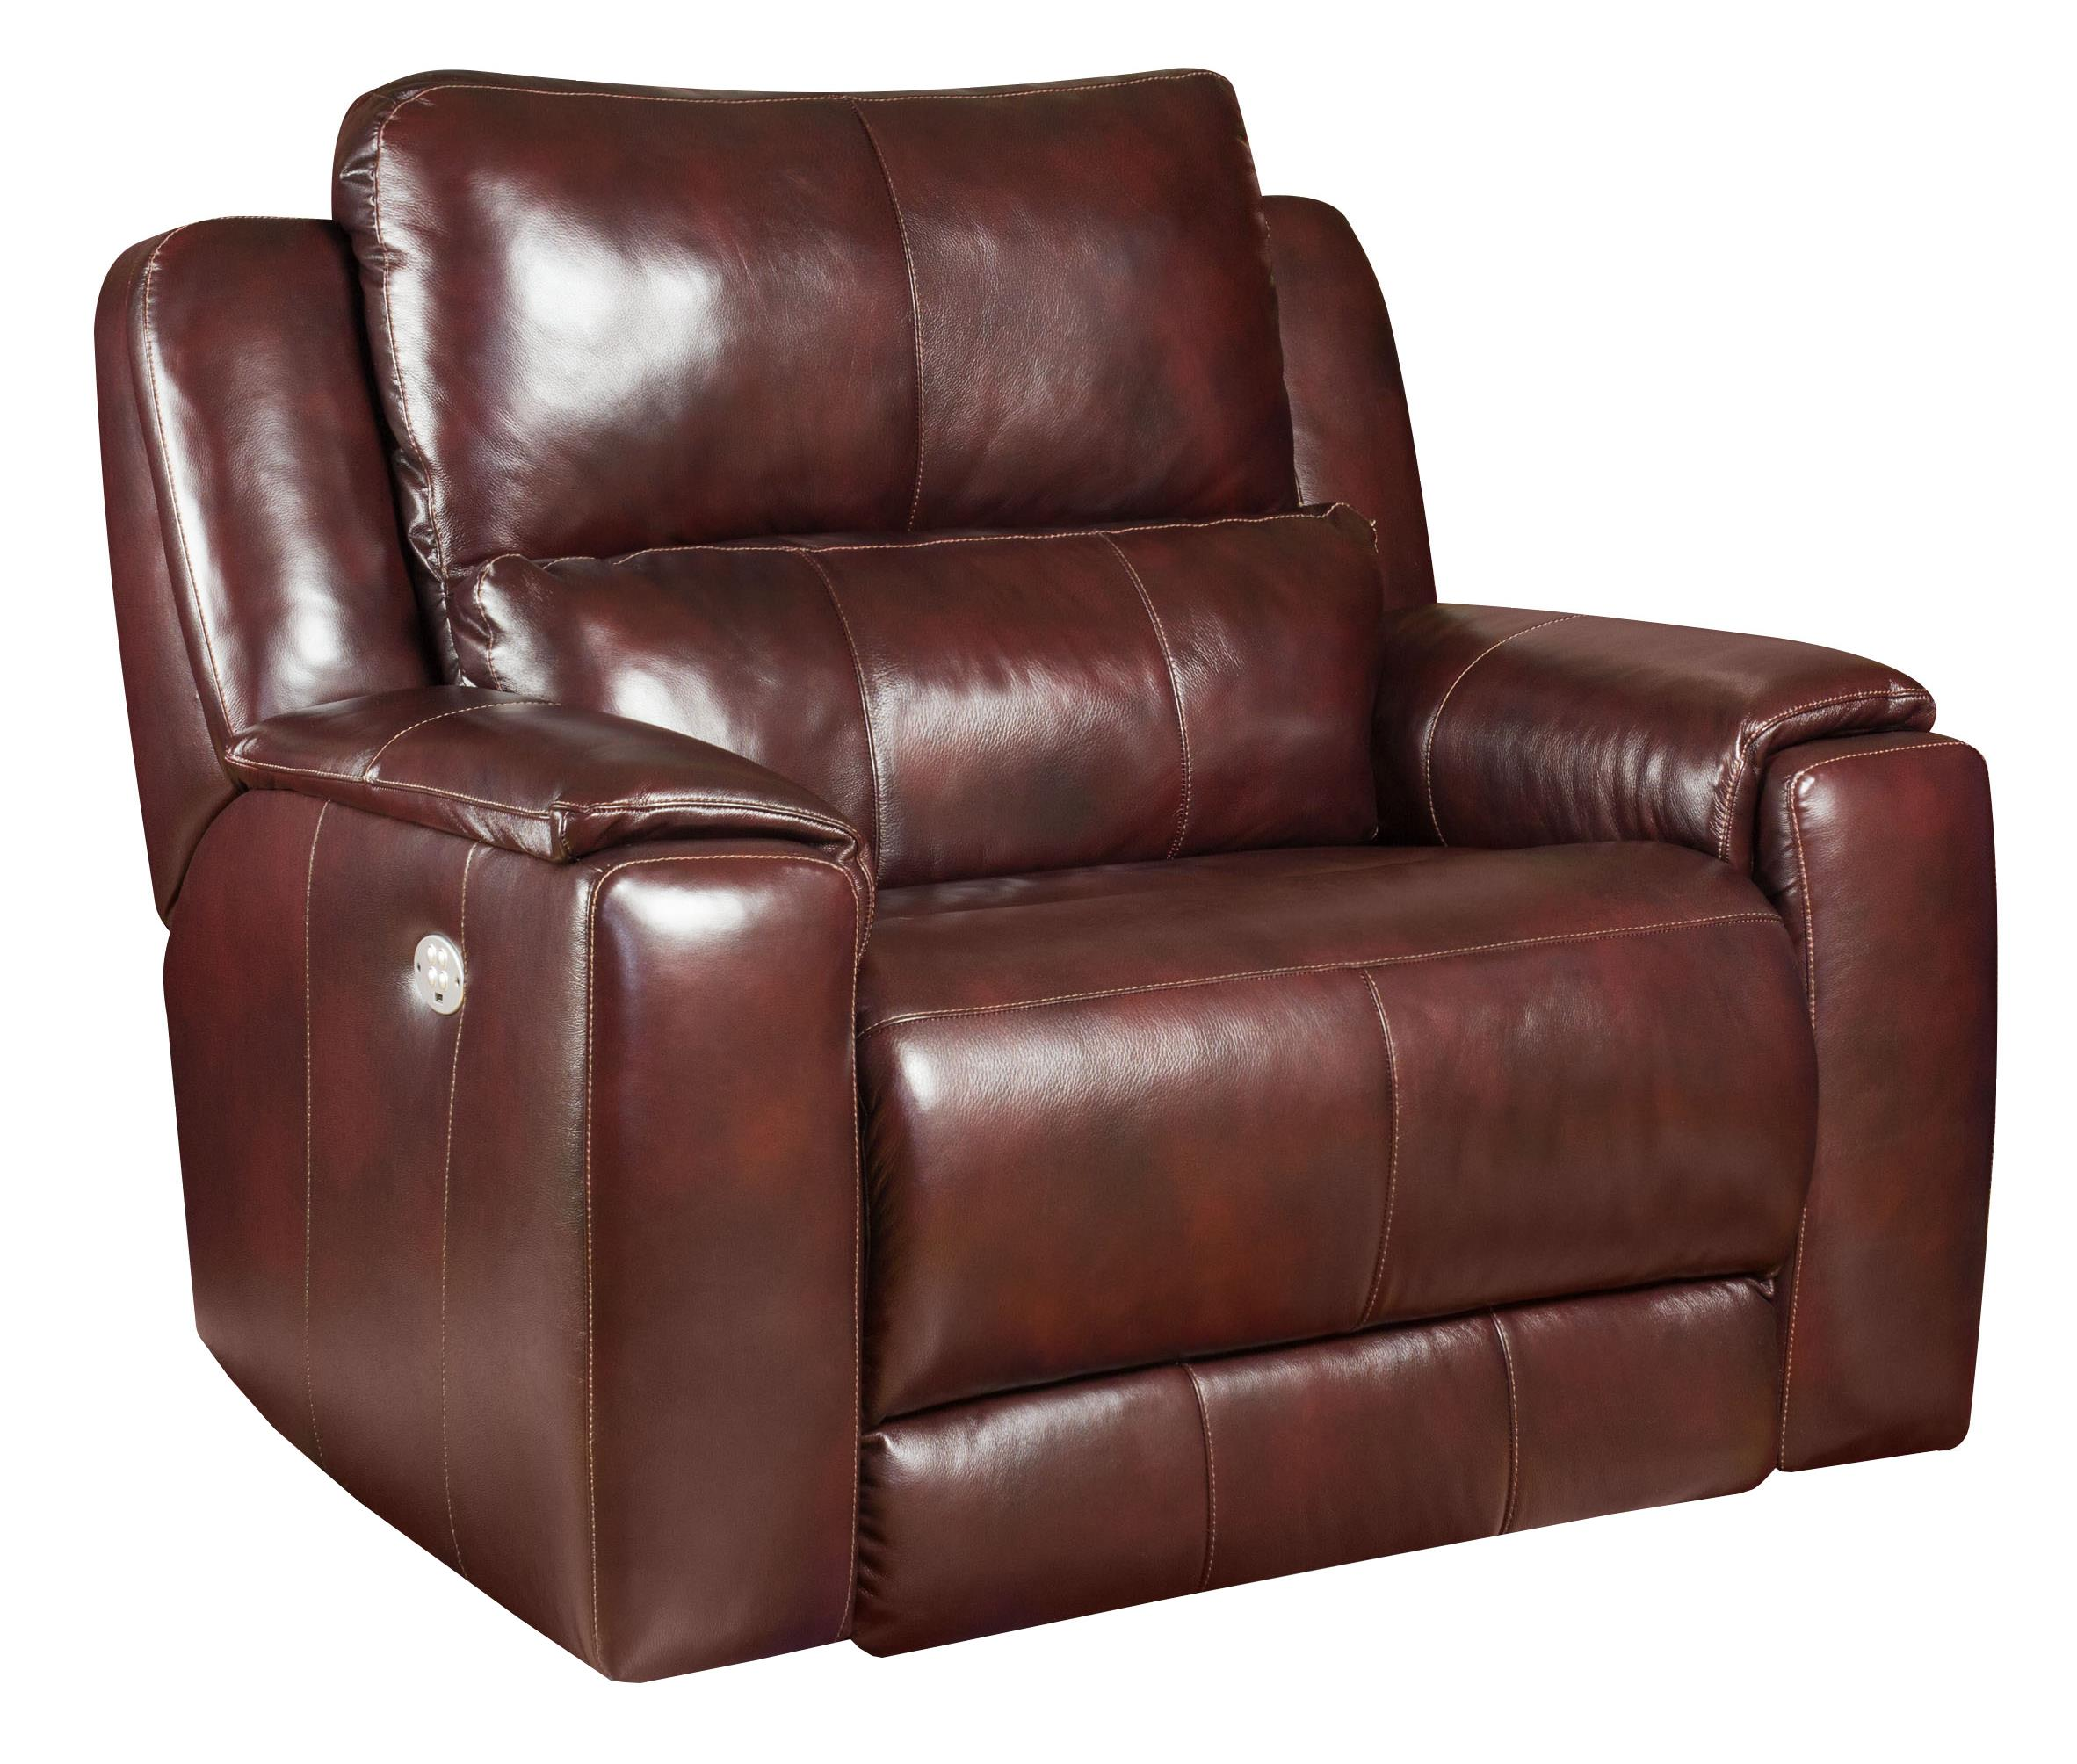 Dazzle Reclining Chair & 1/2 with Power Headrest by Southern Motion at Johnny Janosik